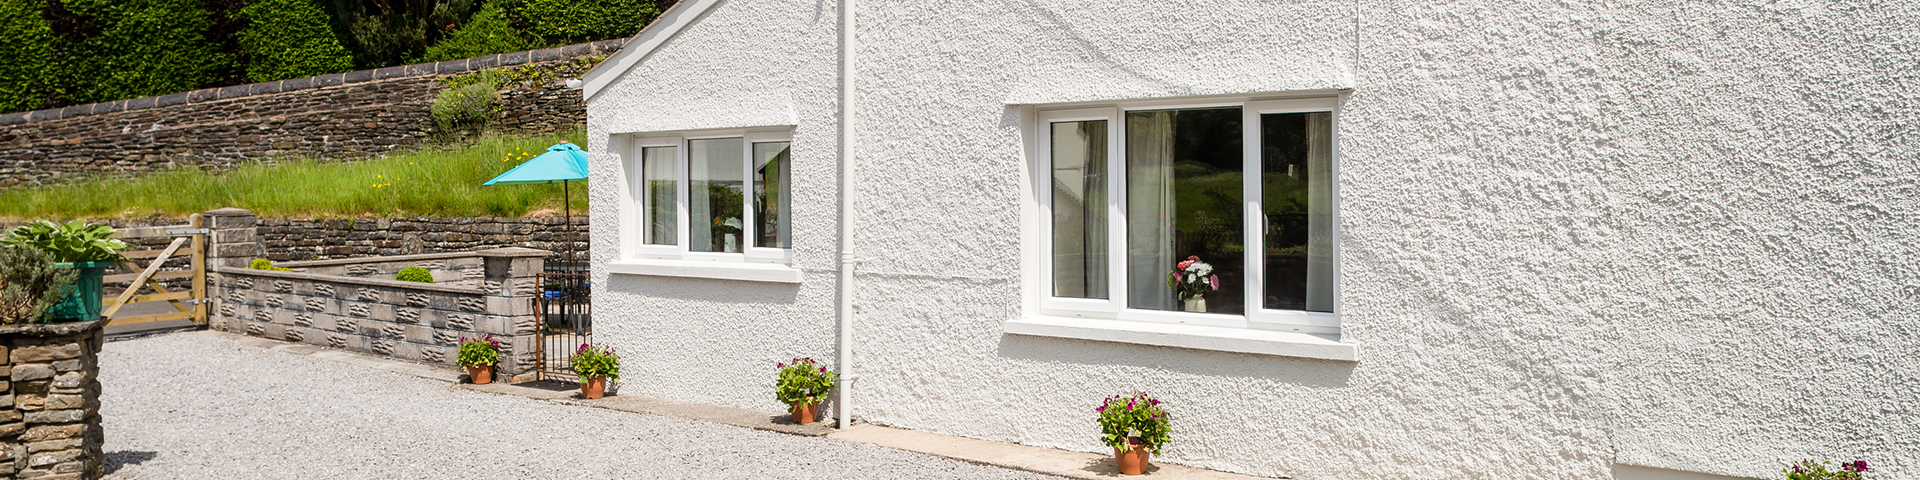 holiday cottages swansea, romantic getaways wales, brecon beacons cottages